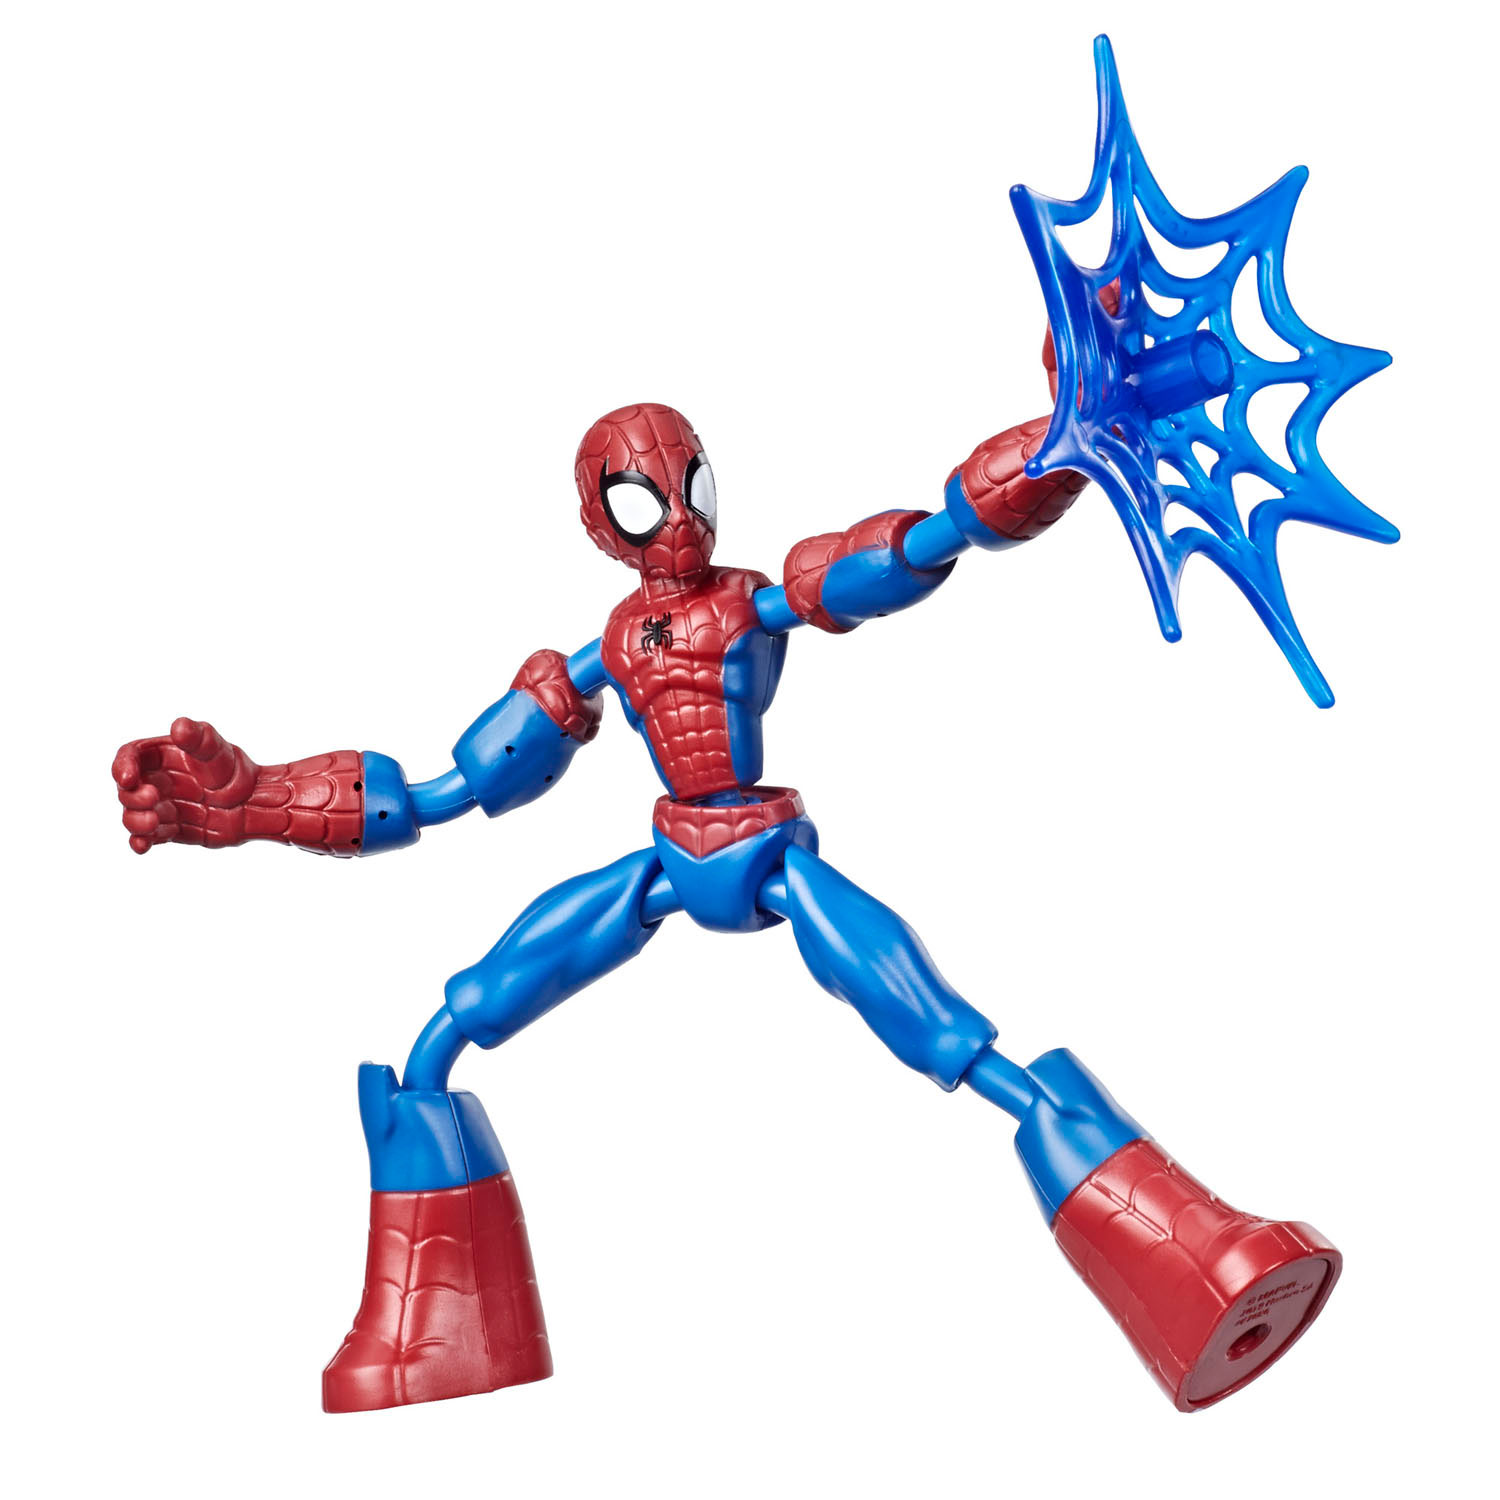 Flexibel Actiefiguur Avengers - Spiderman